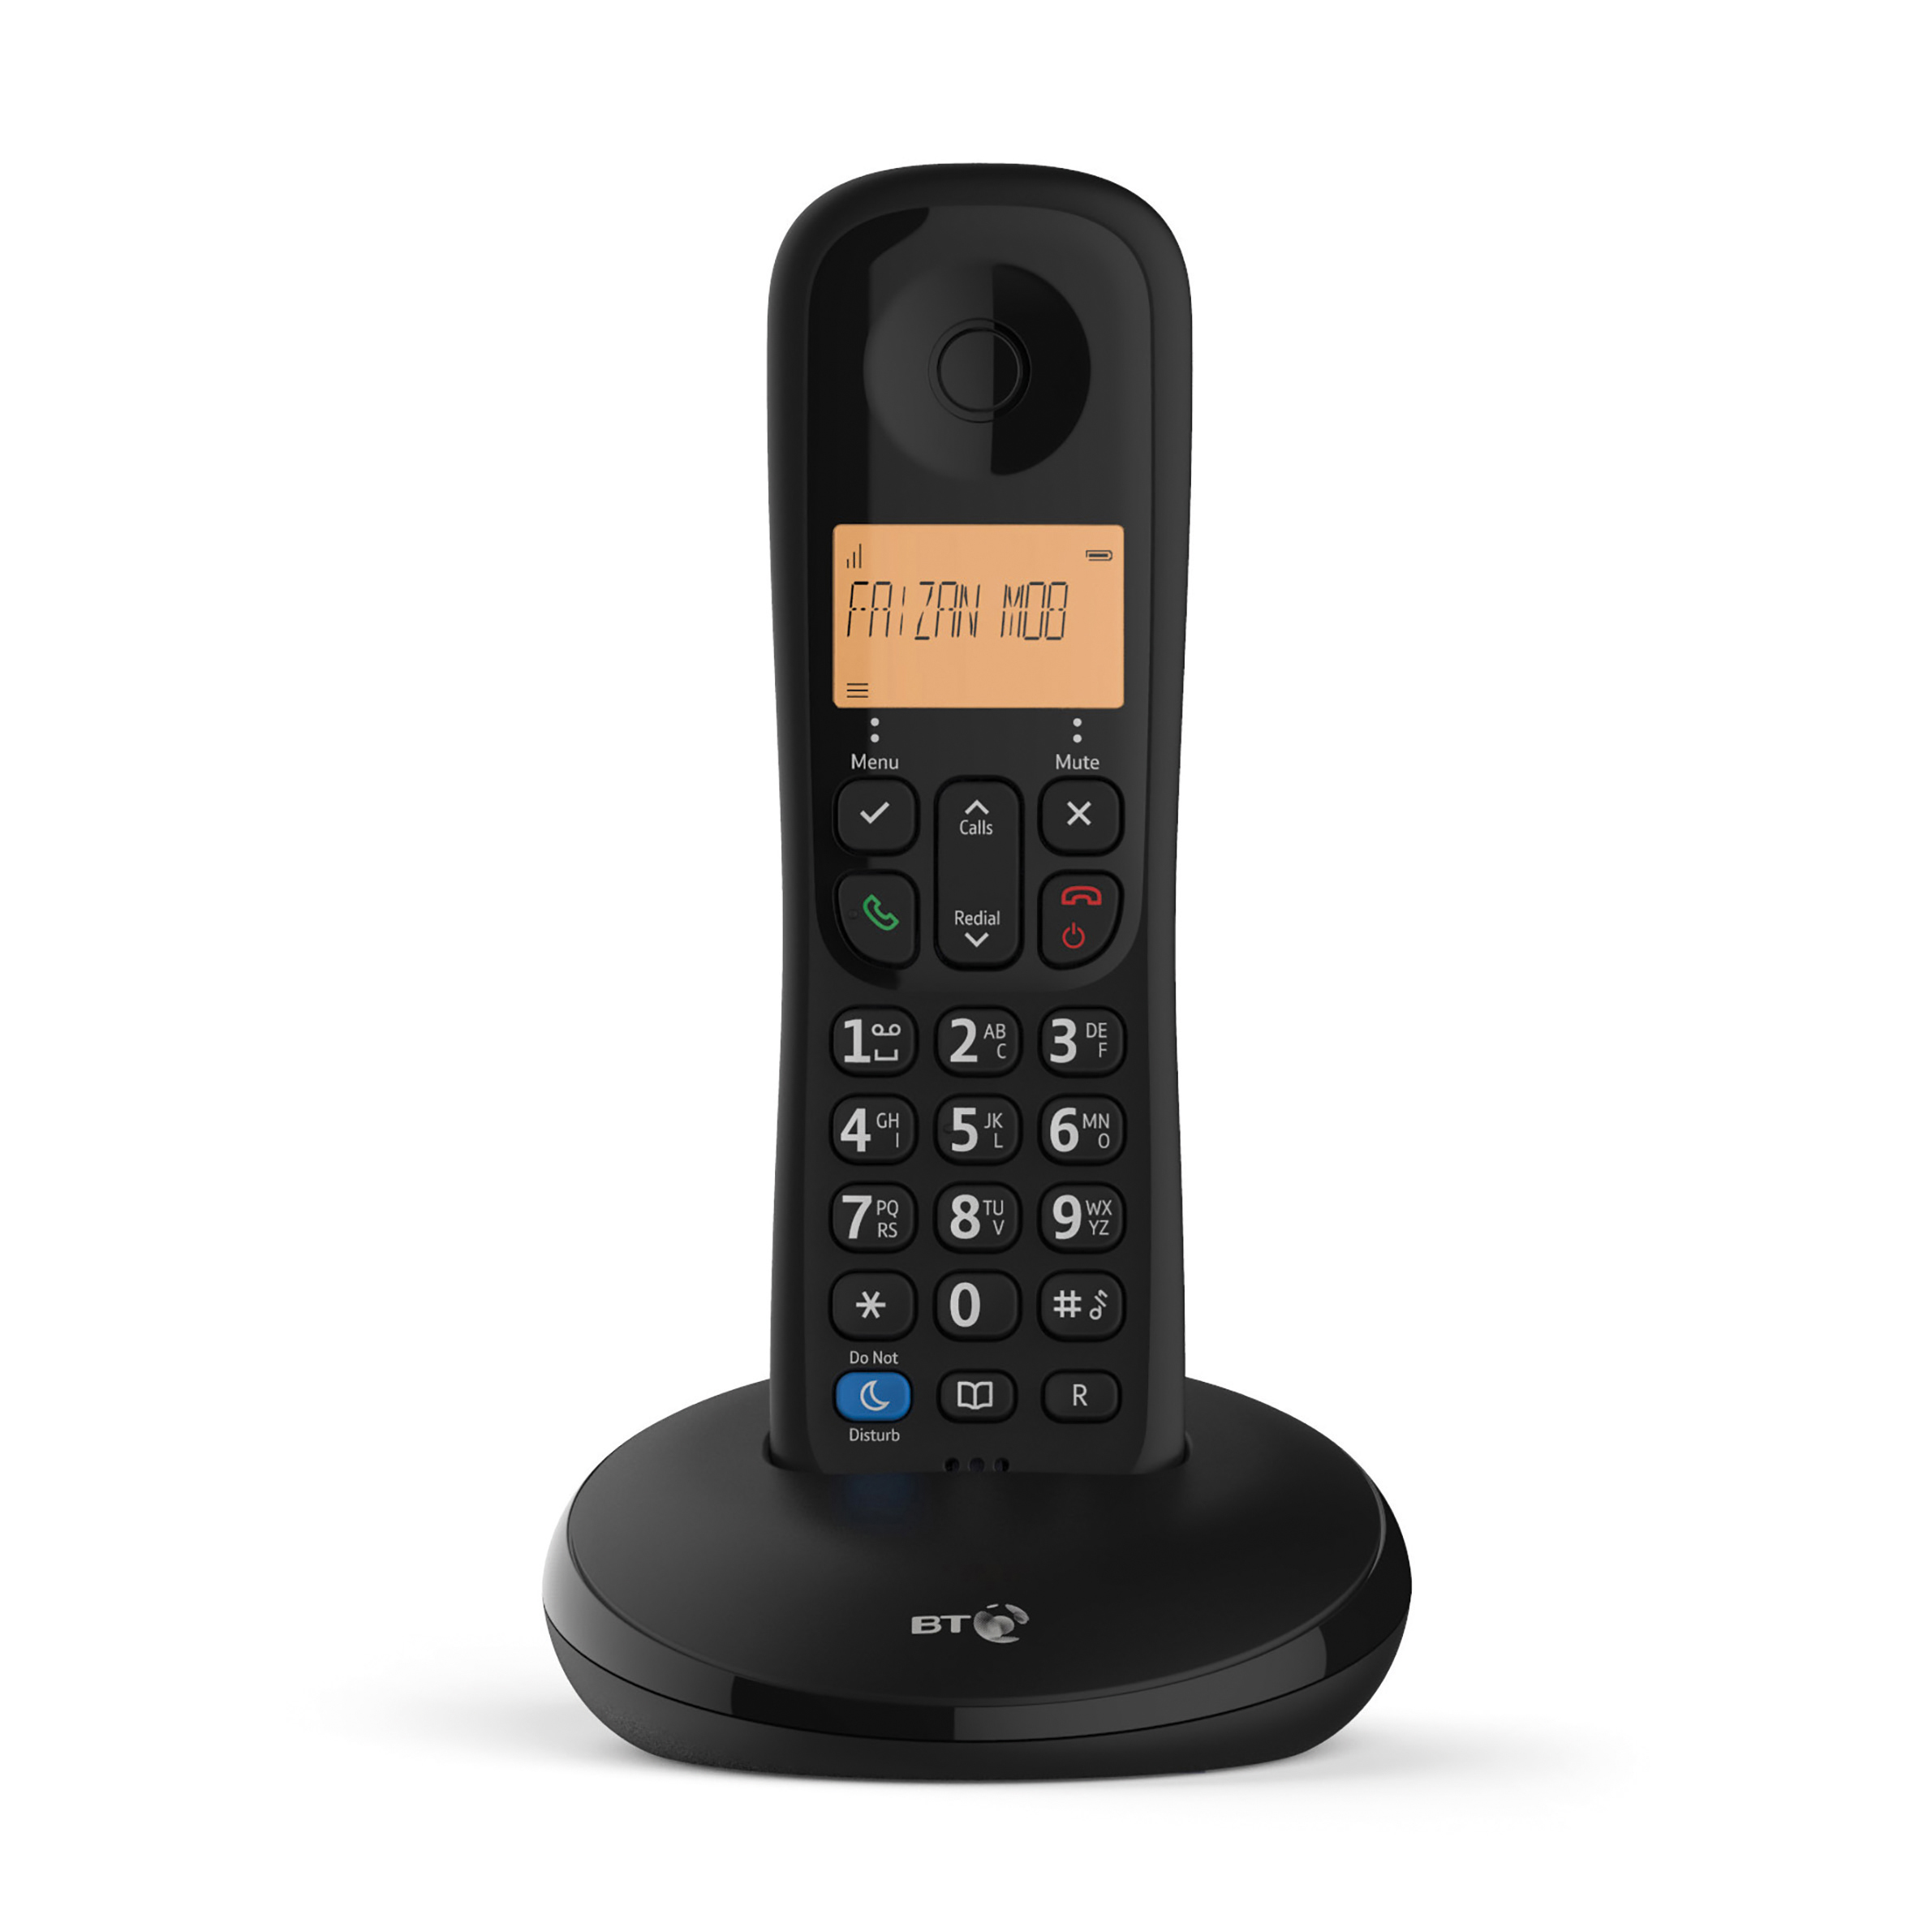 Telephones BT Everyday 1 Telephone 50 Contact Caller ID Storage Single Black Ref 90665